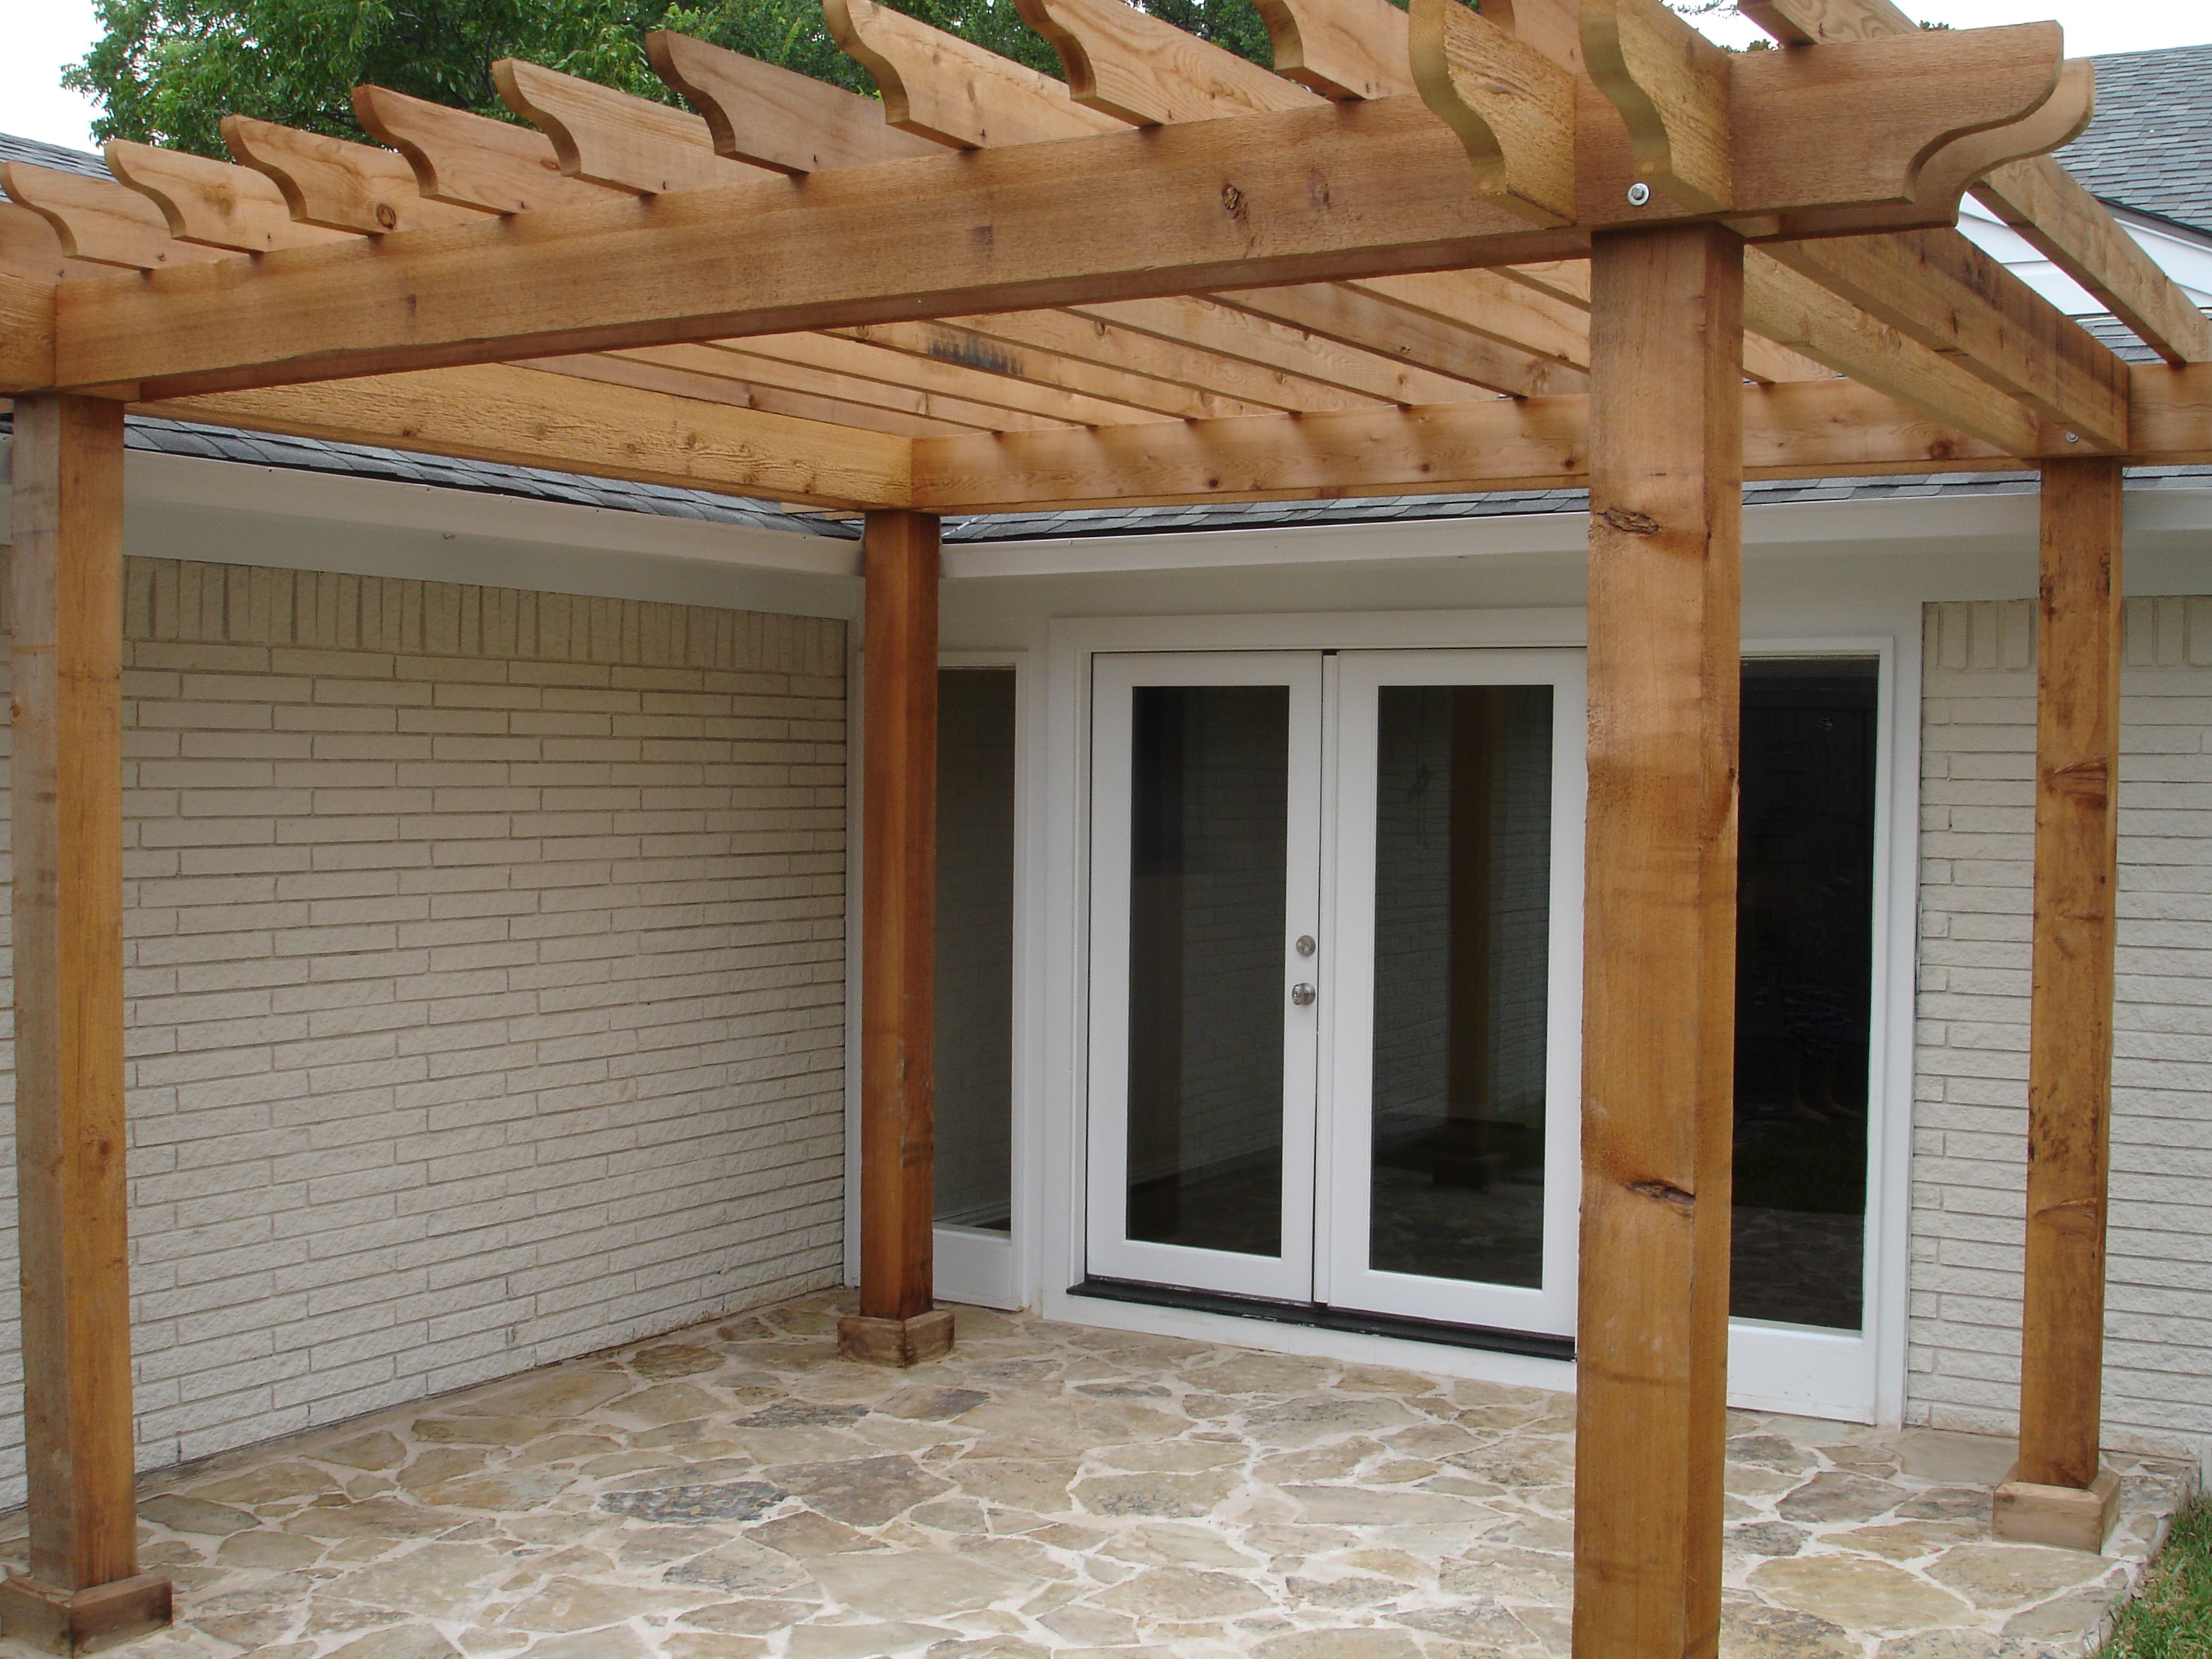 Cost to build pergola - Cedar Pergola Cedar Pergola Kits Rick S Custom Fencing Decking This Would Be Perfect Except We Need Full Shade With A Metal Roof Pinterest We